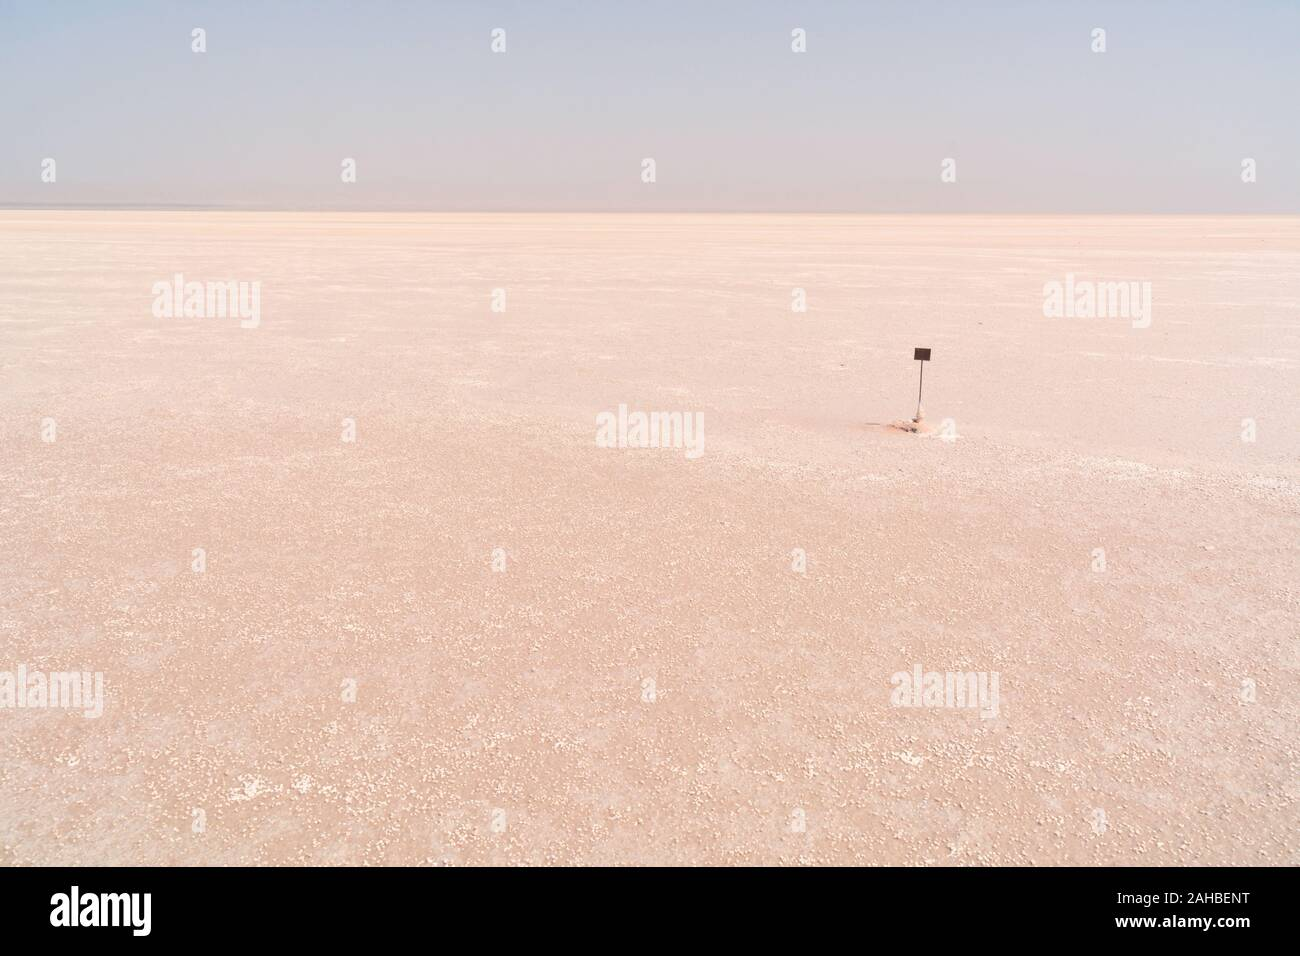 The Flat And Dry Exposed Lake Bed Of The Chott El Djerid Salt Lake Near The Town Of Tozeur In The Sahara Desert Of Southern Tunisia North Africa Stock Photo Alamy